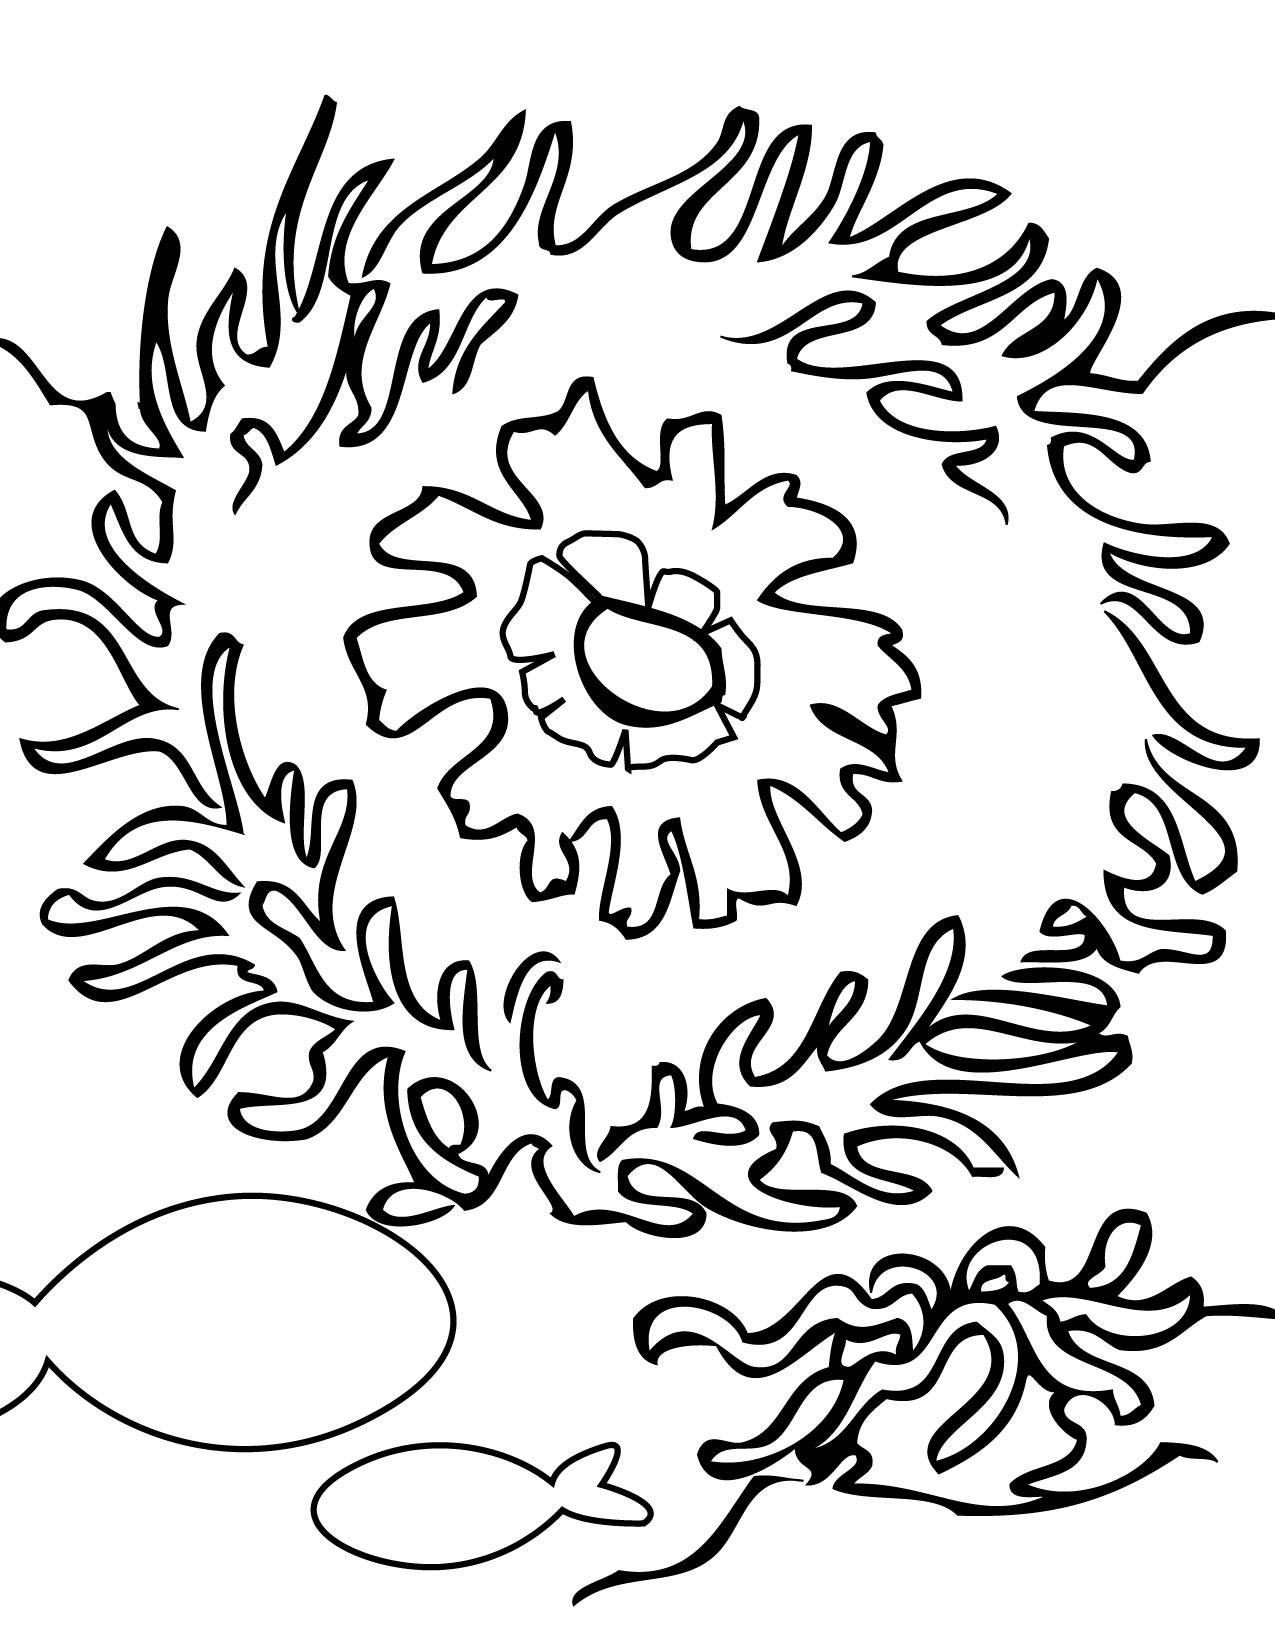 coral reefs coloring pages coloring pages fish eating anemone - Coral Reef Coloring Pages Kids